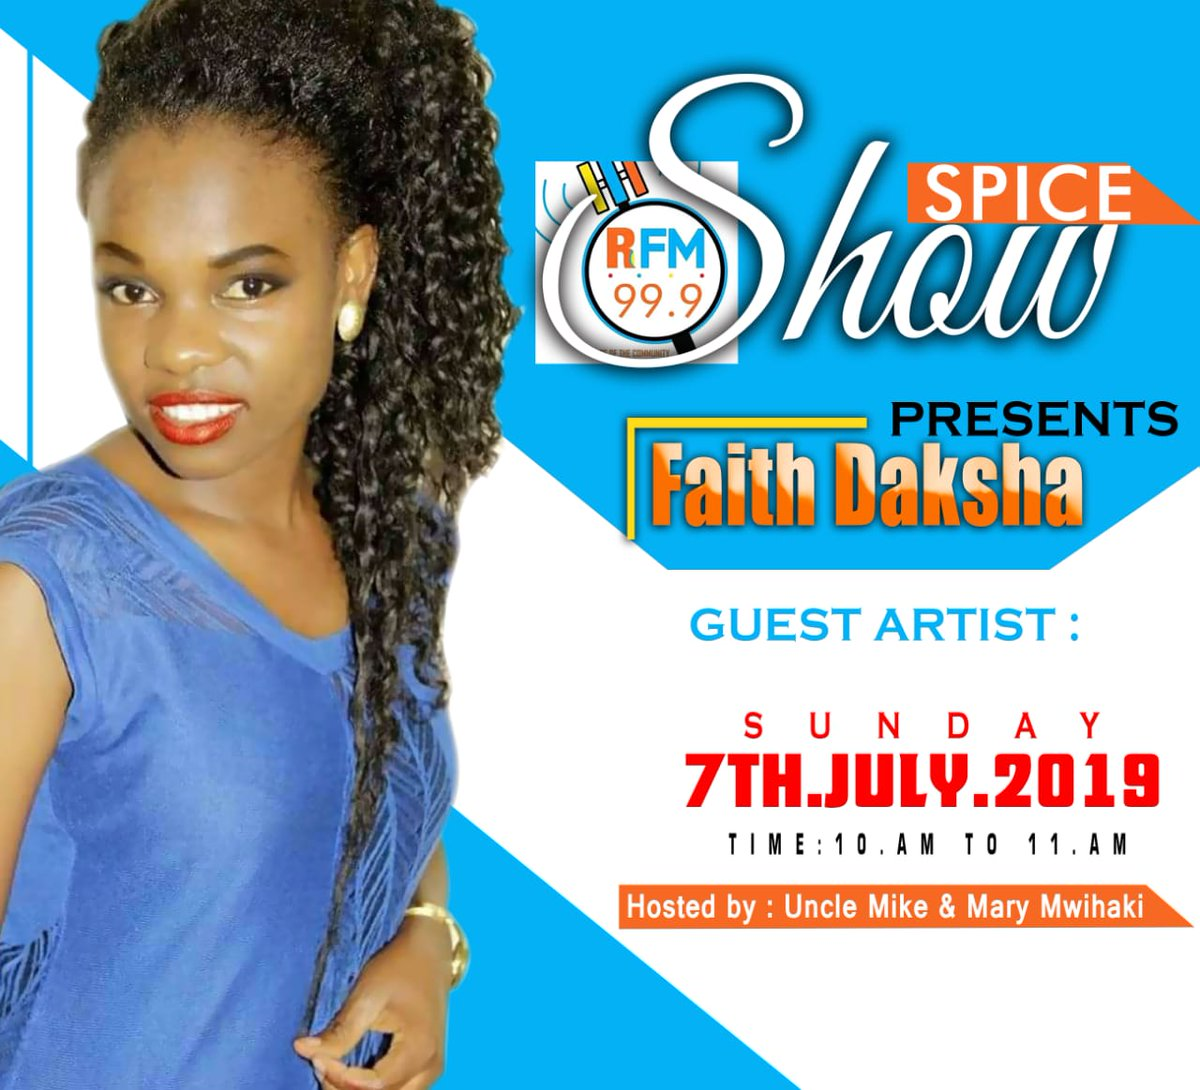 This Sunday on the #spiceshow we're excited to have @FaithDaksha in the house, hosted to you by @Em_Eye_Kay. Tune in and listen to her amazing journey.